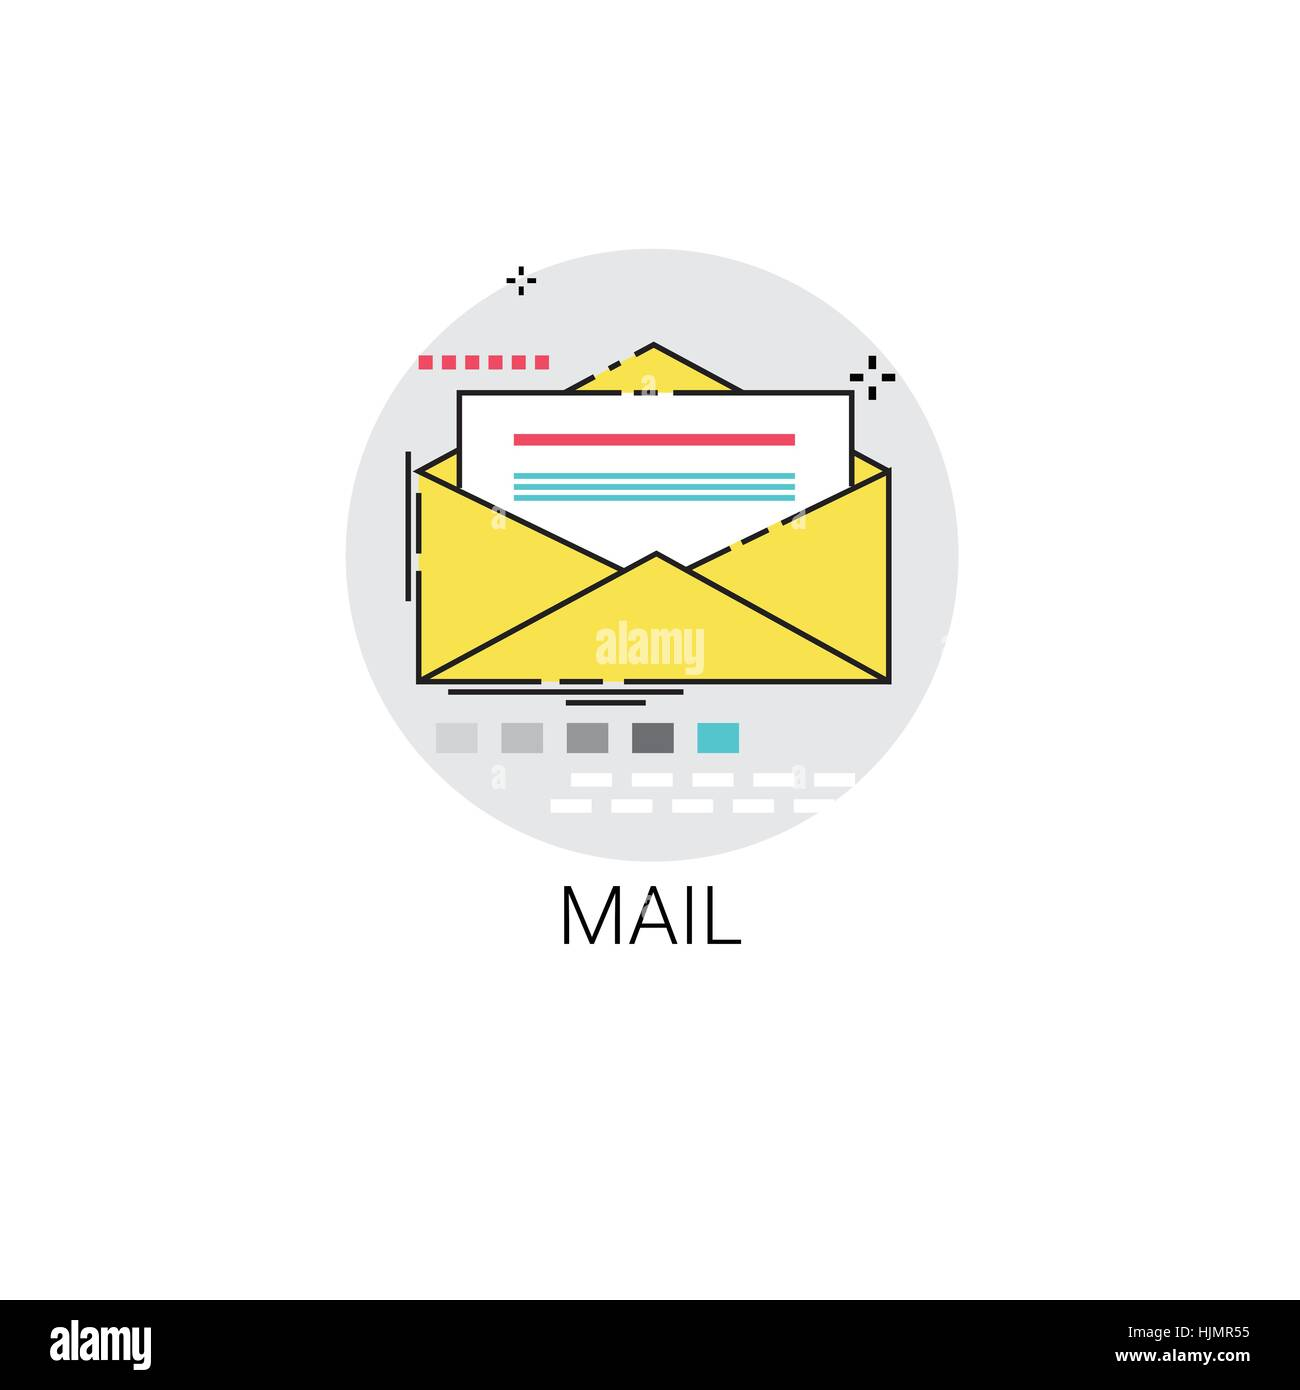 Notification Envelope Email Inbox Message Send Mail Icon - Stock Image